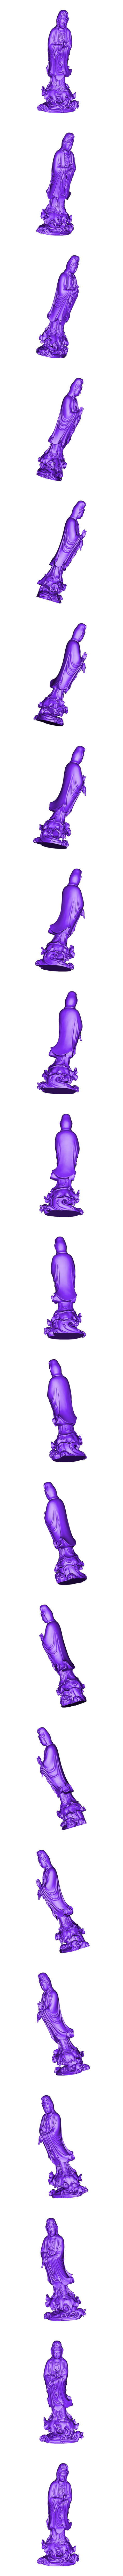 016guanyin.stl Download free OBJ file Guanyin bodhisattva Kwan-yin sculpture for cnc or 3d printer #016 • 3D printer design, stlfilesfree